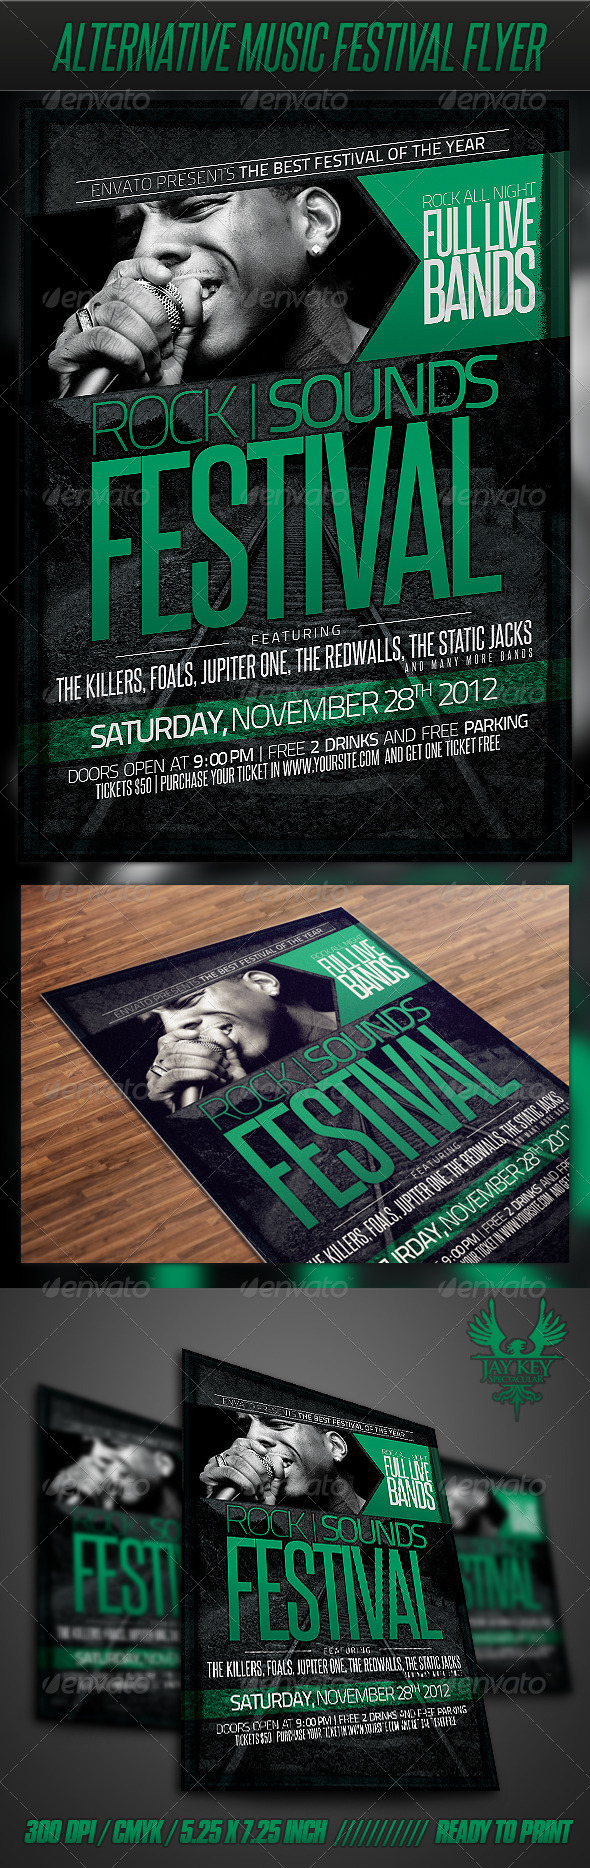 GraphicRiver Alternative Music Festival Flyer 3392049